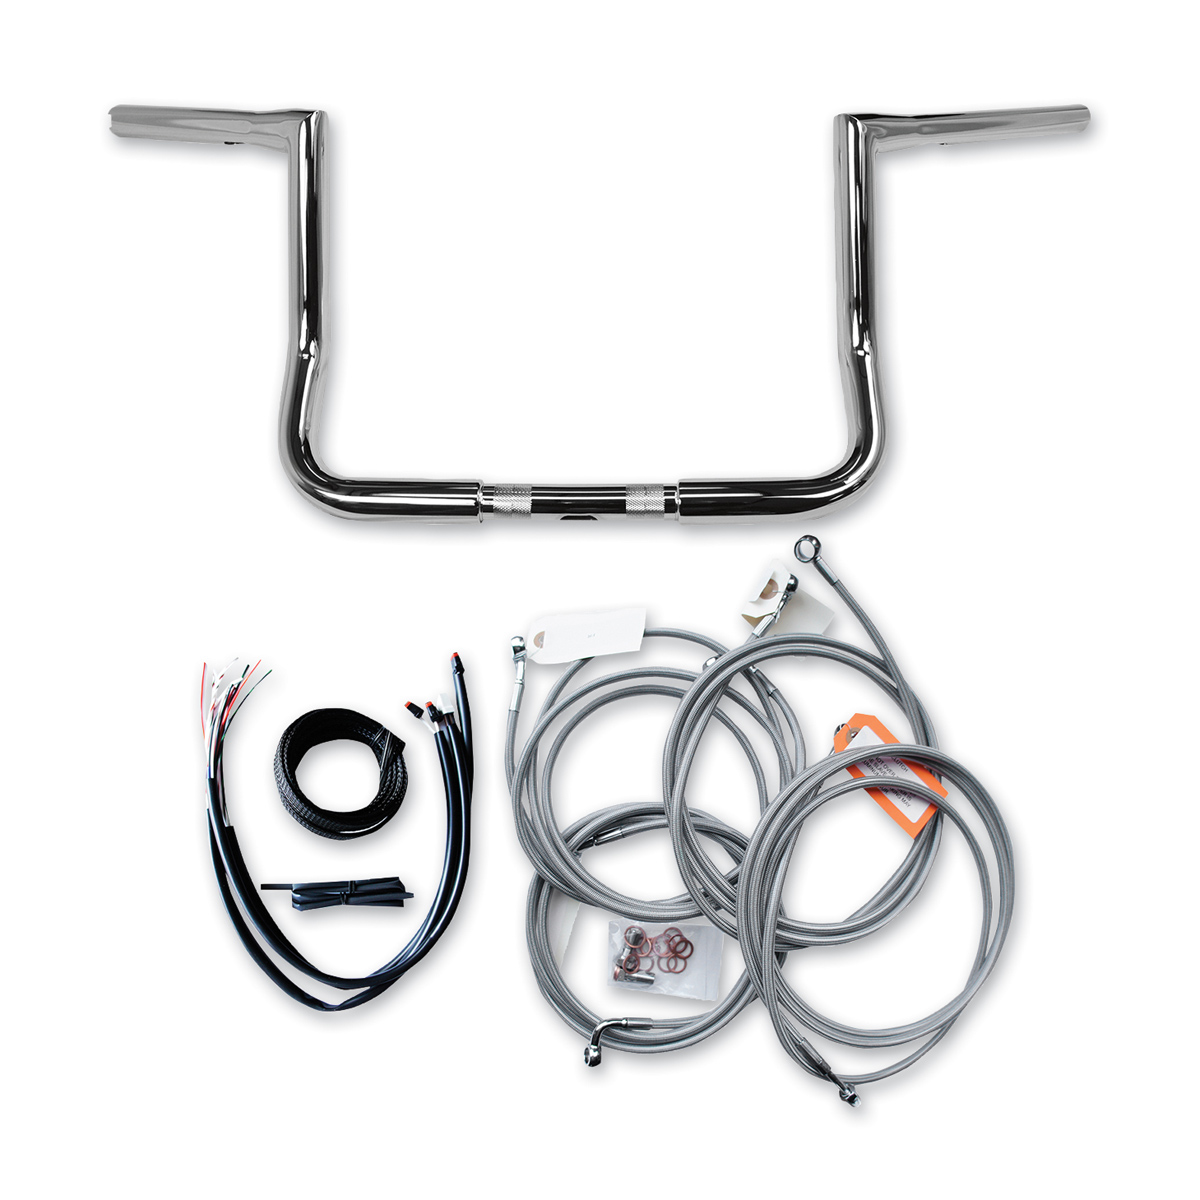 LA Choppers 1-1/4' Chrome 12' Bagger Ape Hanger Stainless Braided Handlebar Kit